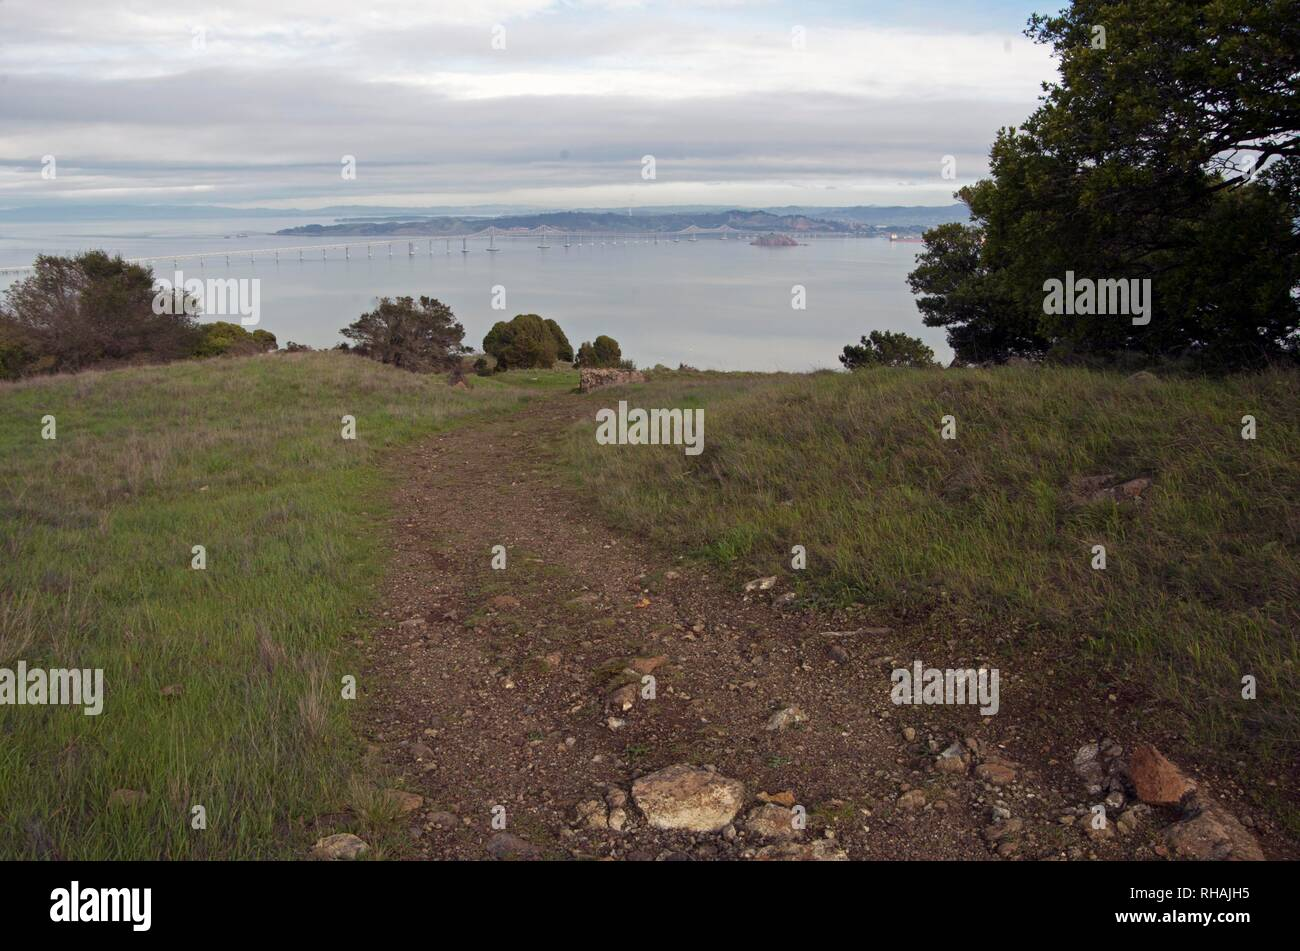 Ring Mountain is a public space in Marin County in which walkers can get views of all of the Bay Area, including San Francisco. - Stock Image